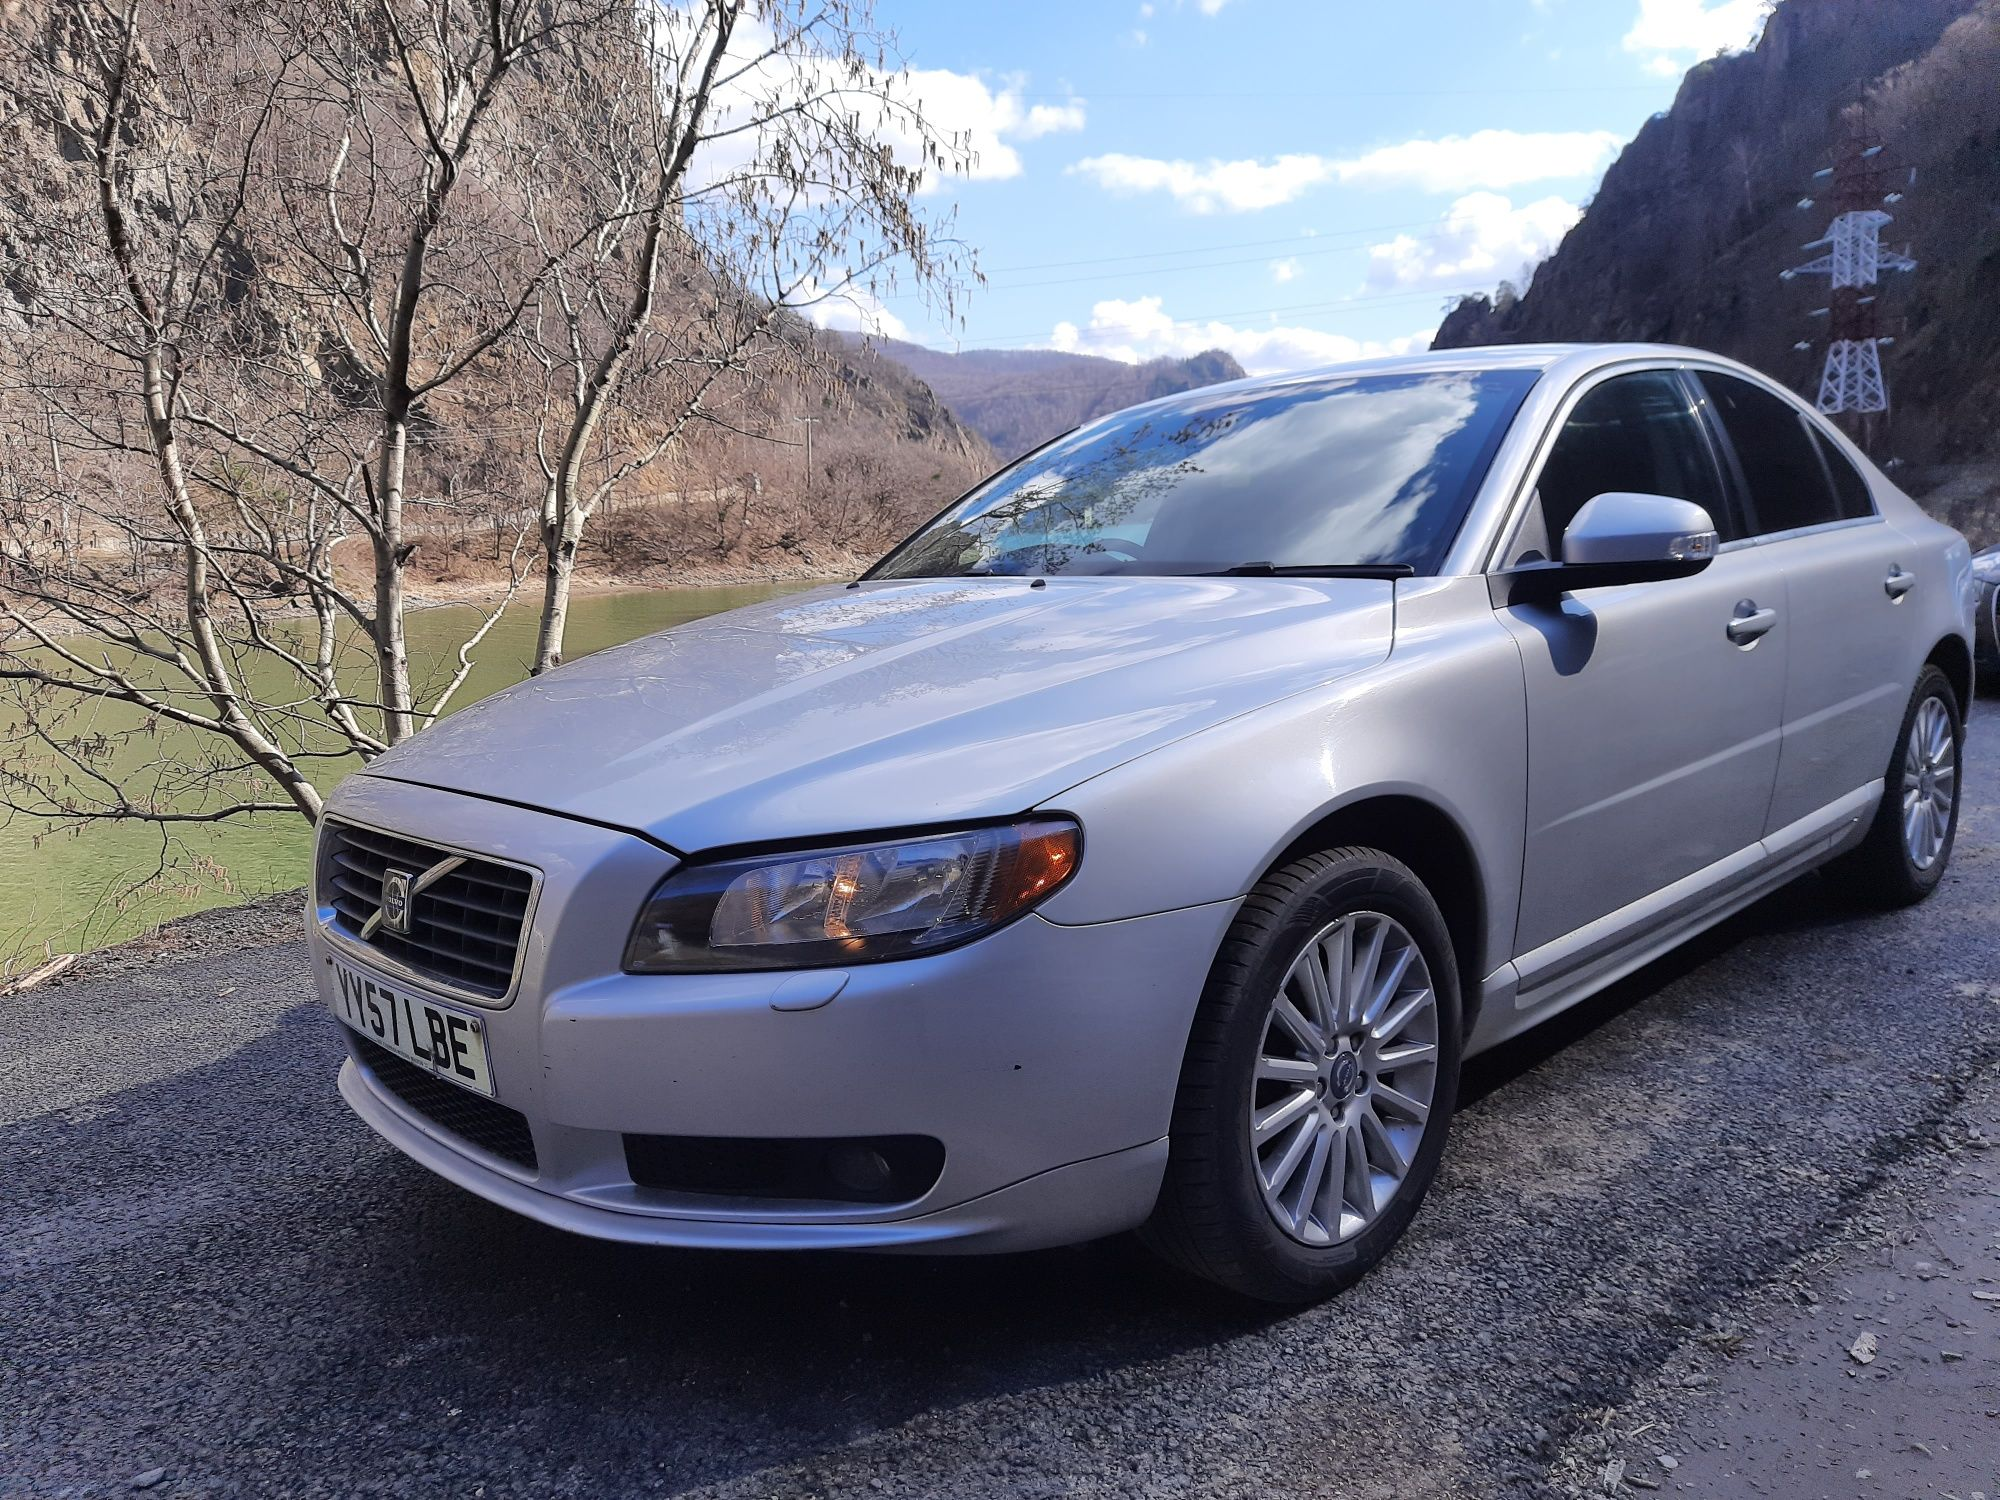 Piese Volvo S80 2.4d 185Cp Euro 4 2007